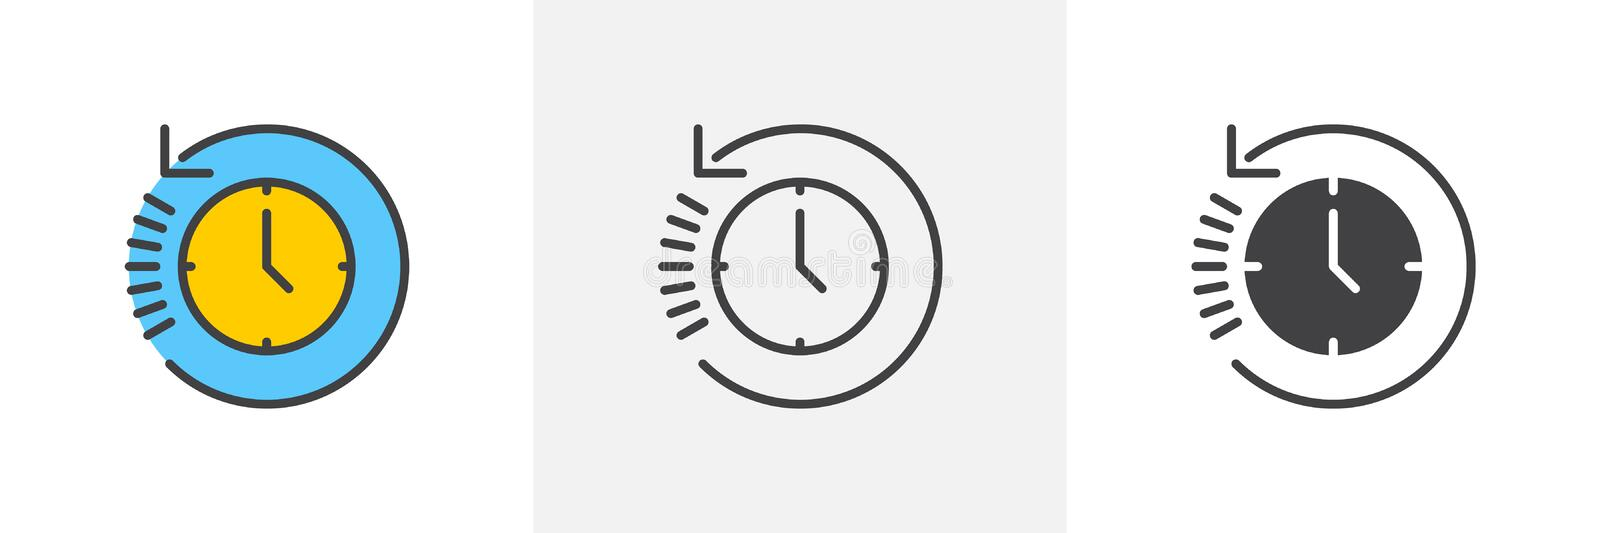 History, clock with arrow around icon royalty free illustration